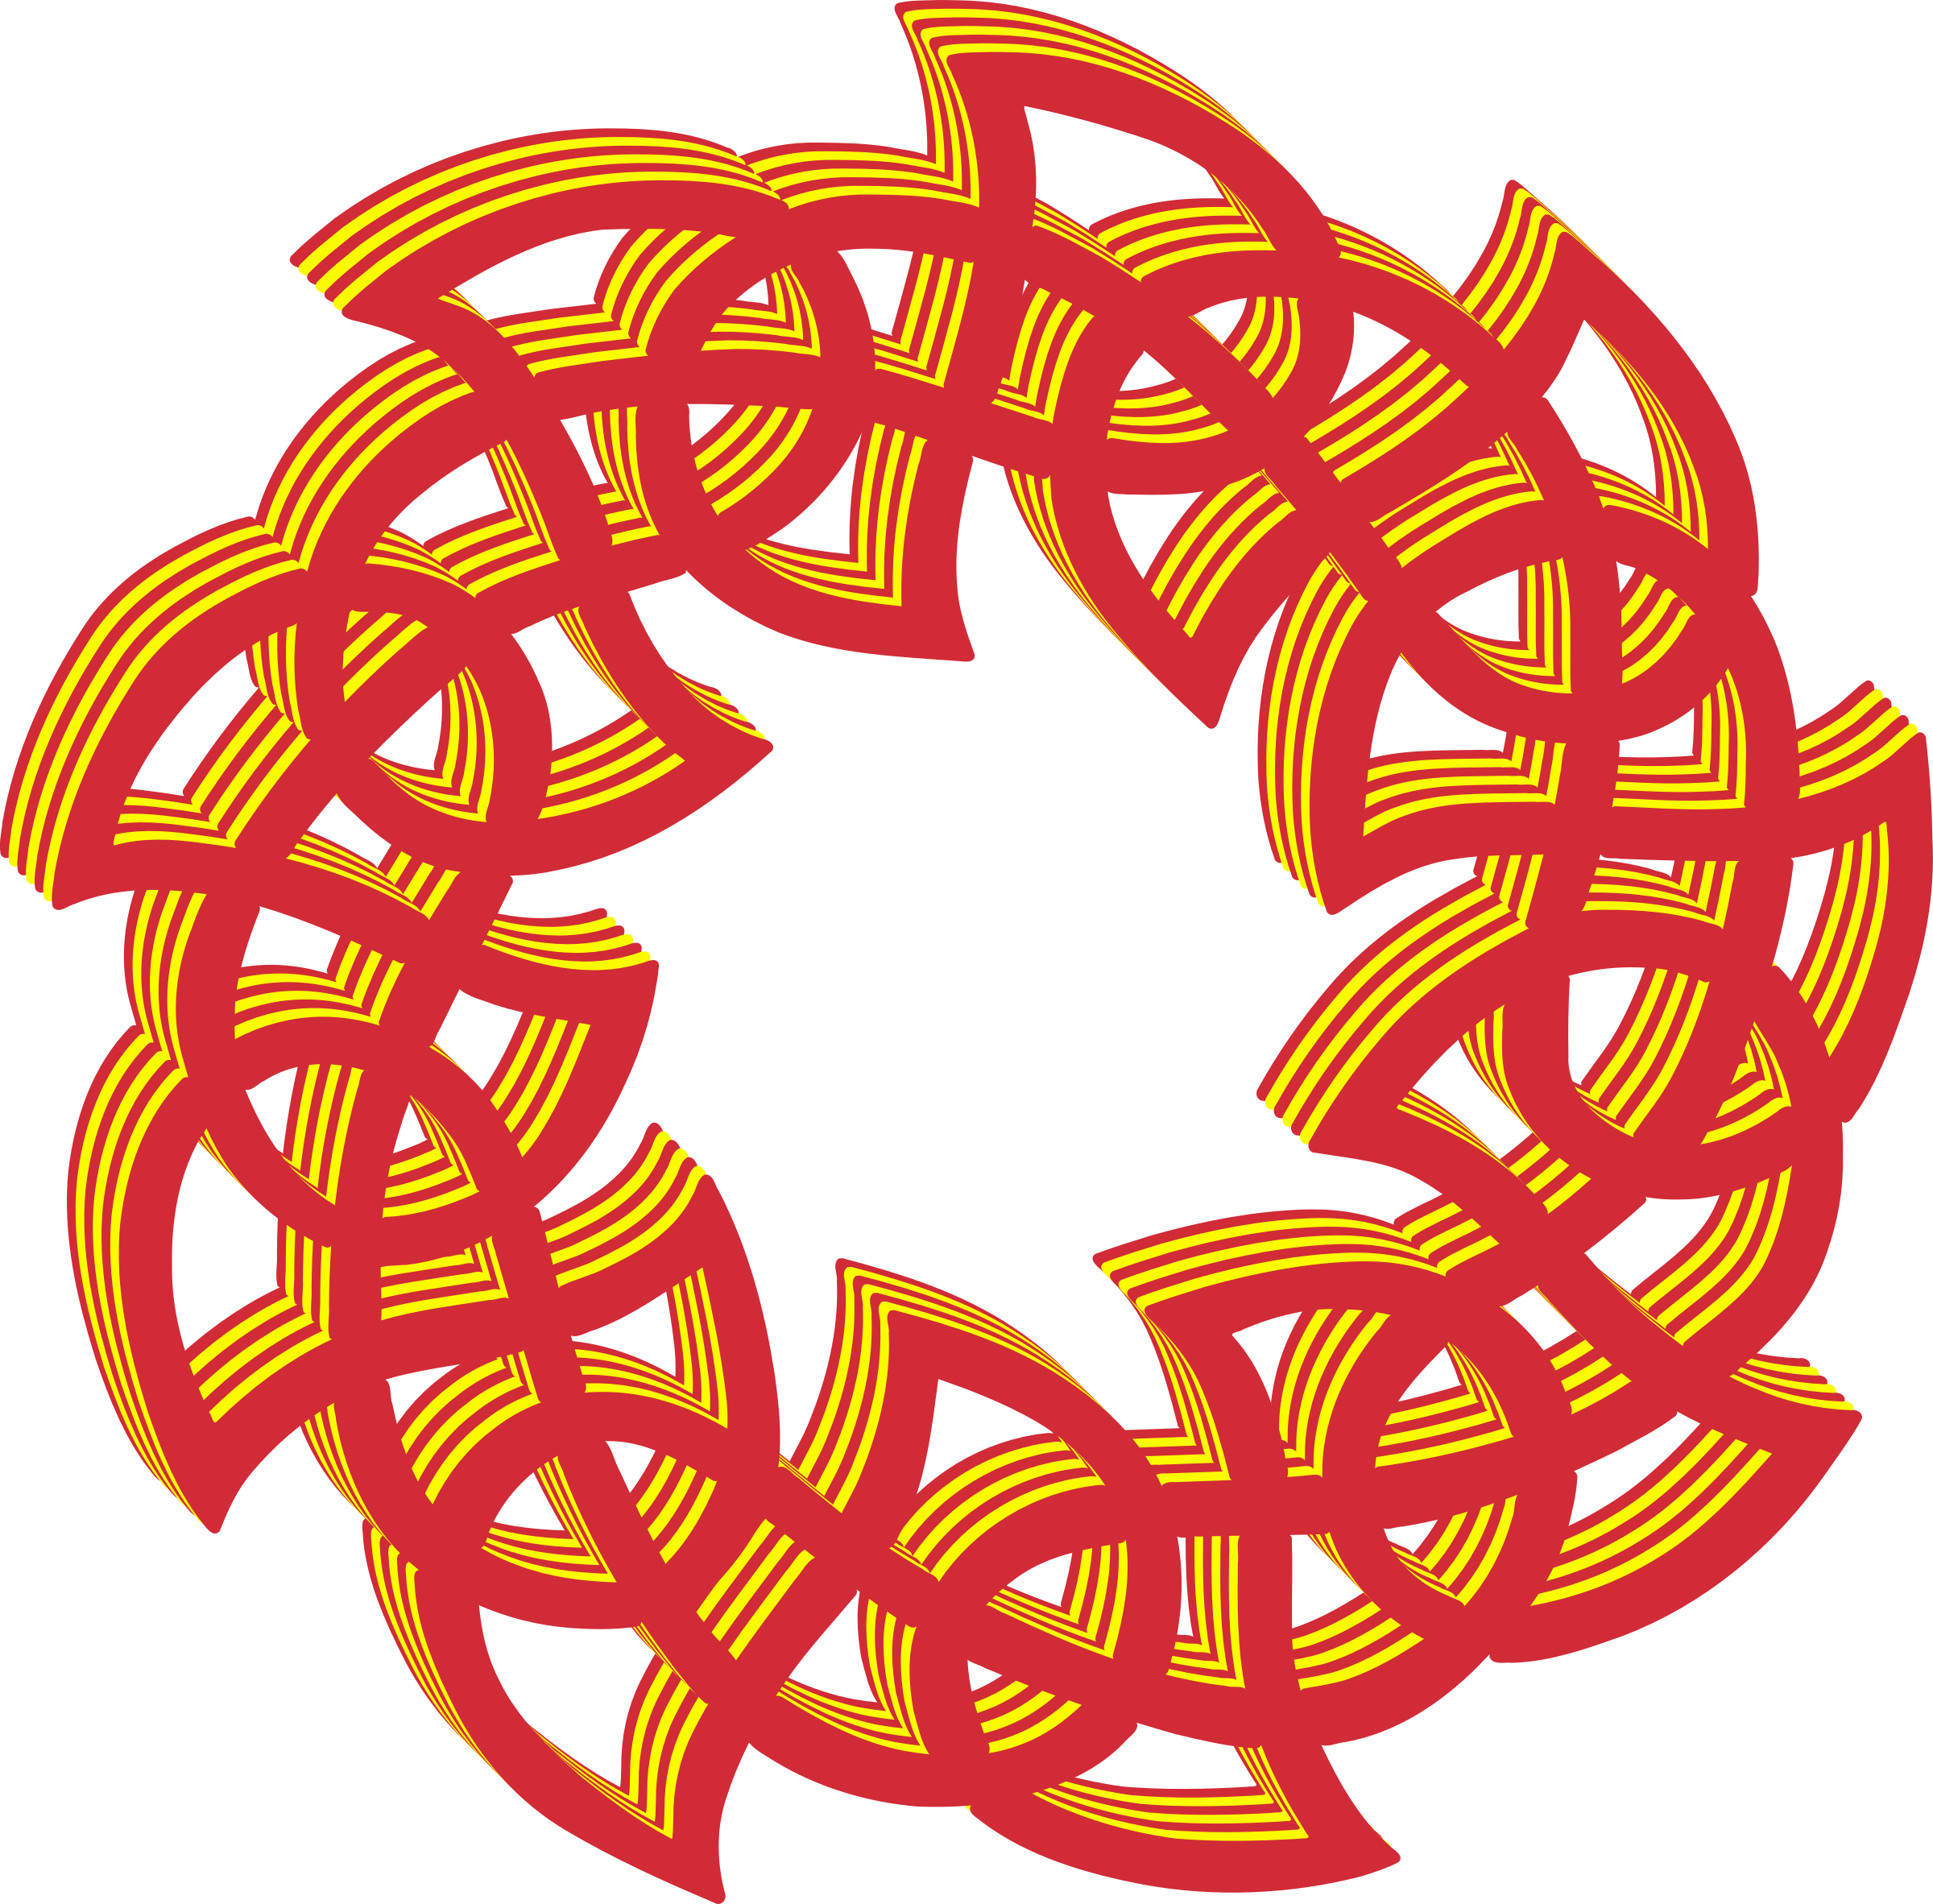 Celtic knot 2 (colour 2) by Firkin